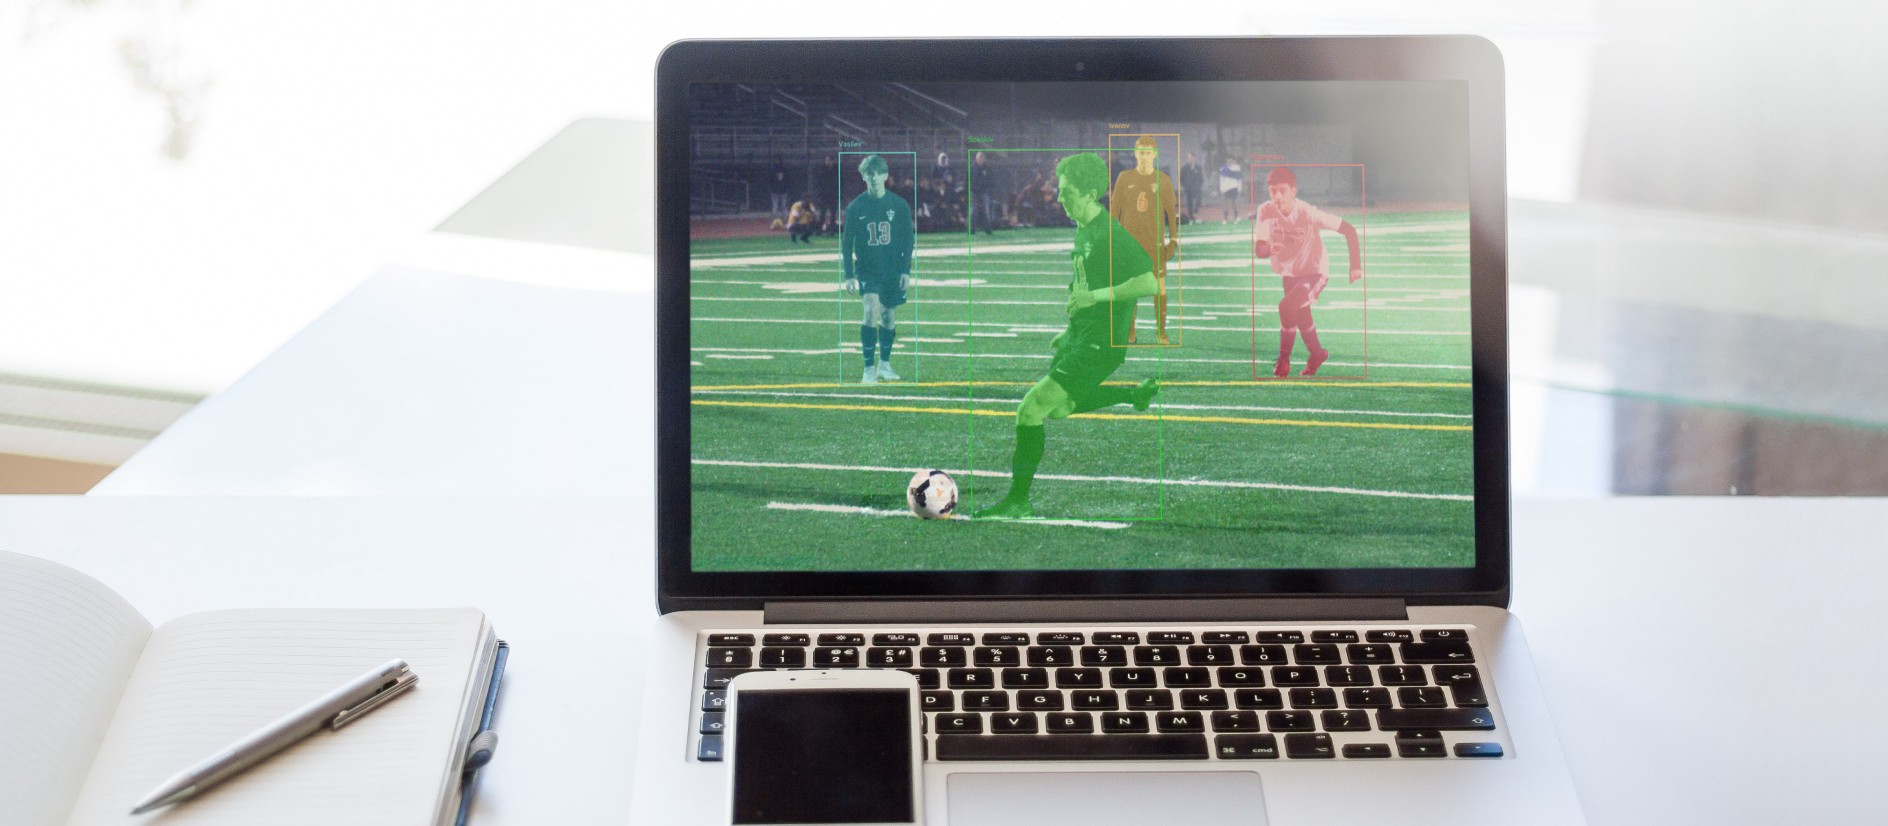 Automated video analytics for football schools